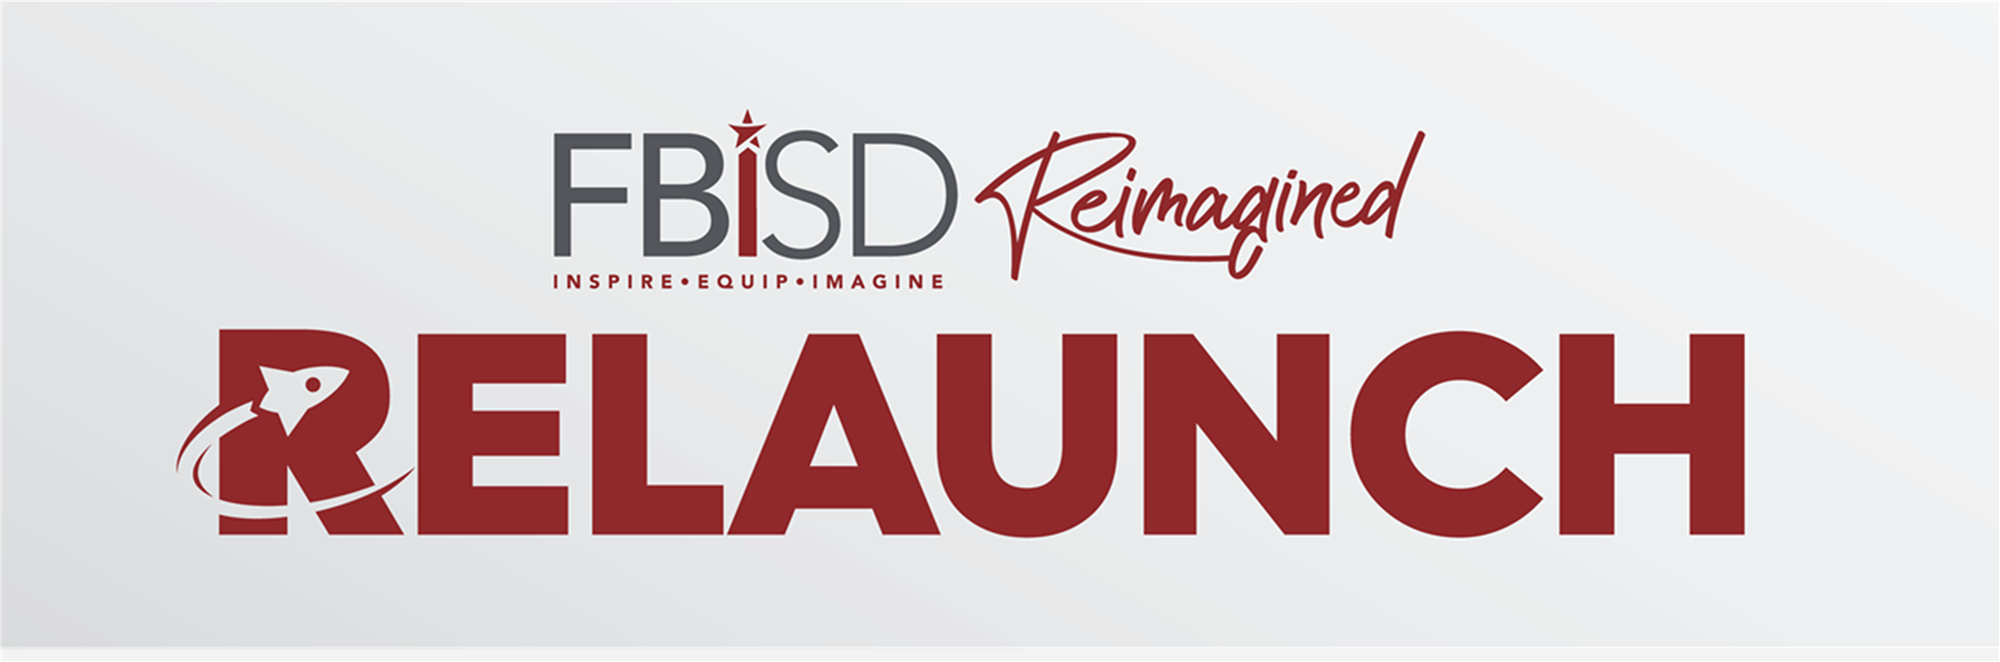 FBISD Reimagined Relaunch